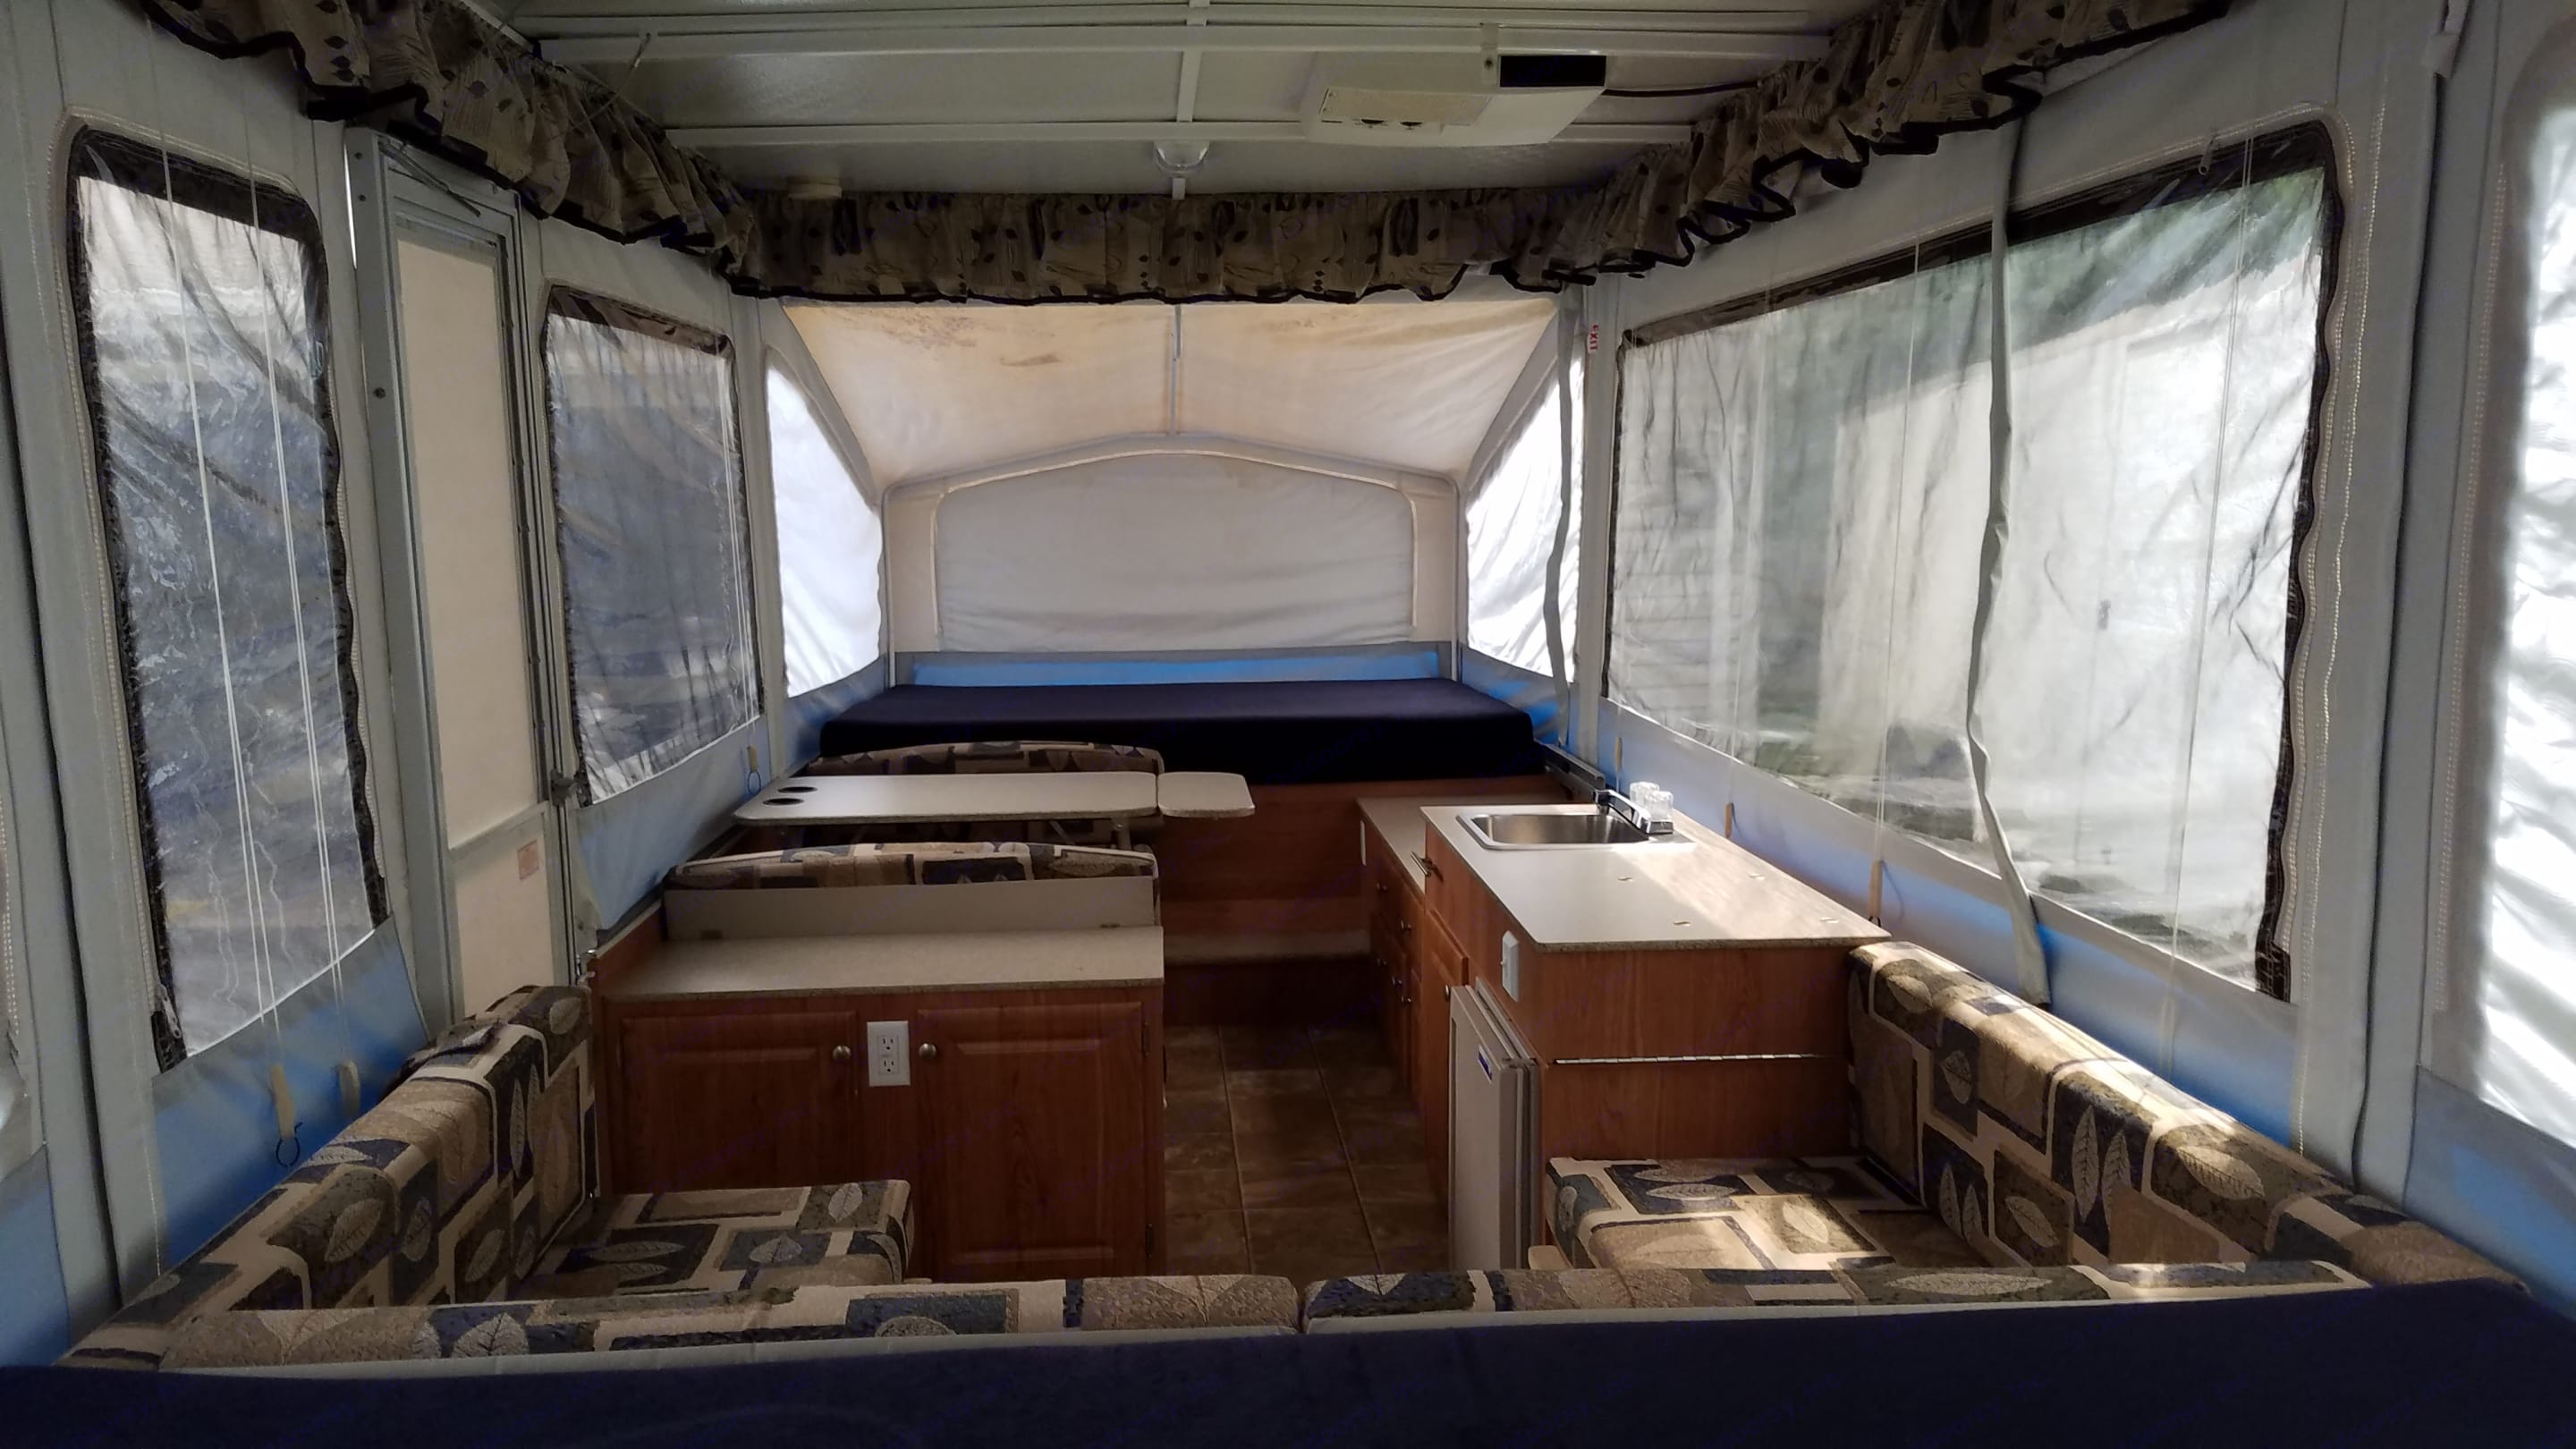 Tinted vinyl windows add privacy & shade. Blackout curtains come down allowing you to get it to be pretty dark inside during the day.. Jayco Baja 2008